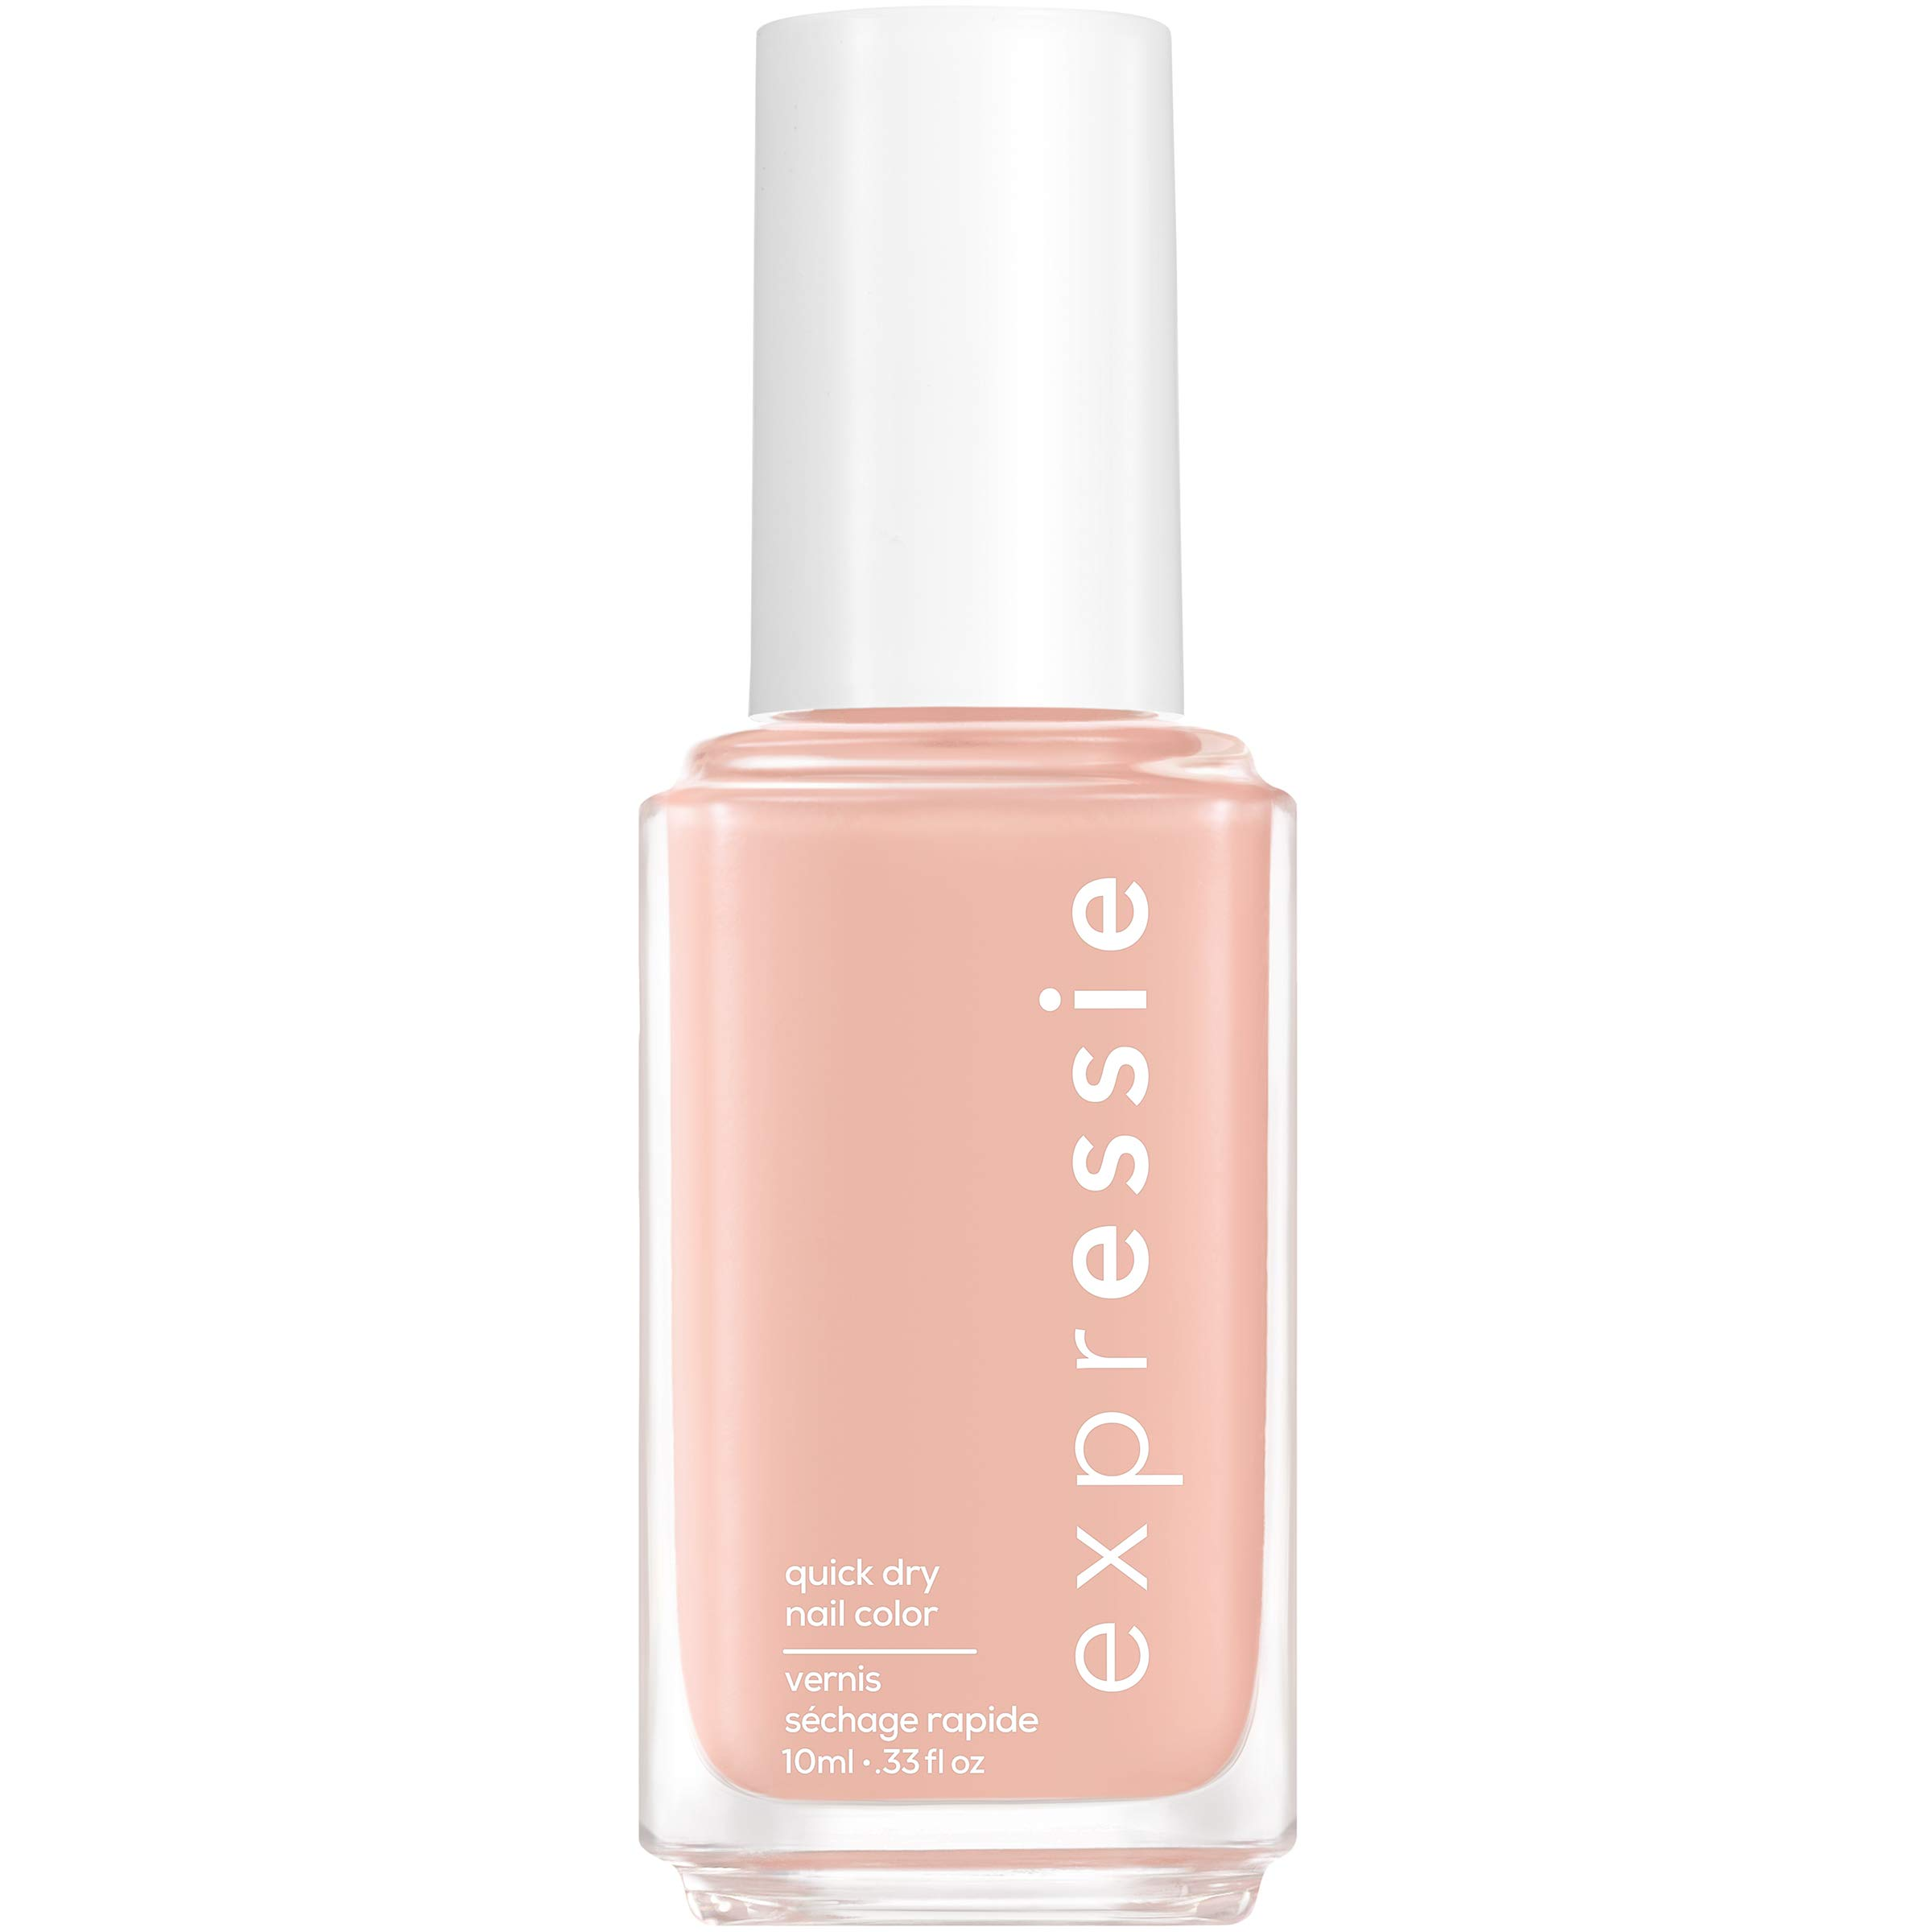 essie expressie Quick-Dry Vegan Nail Polish, Soft Pink Beige 000 Crop Top and Roll, 0.33 Ounces